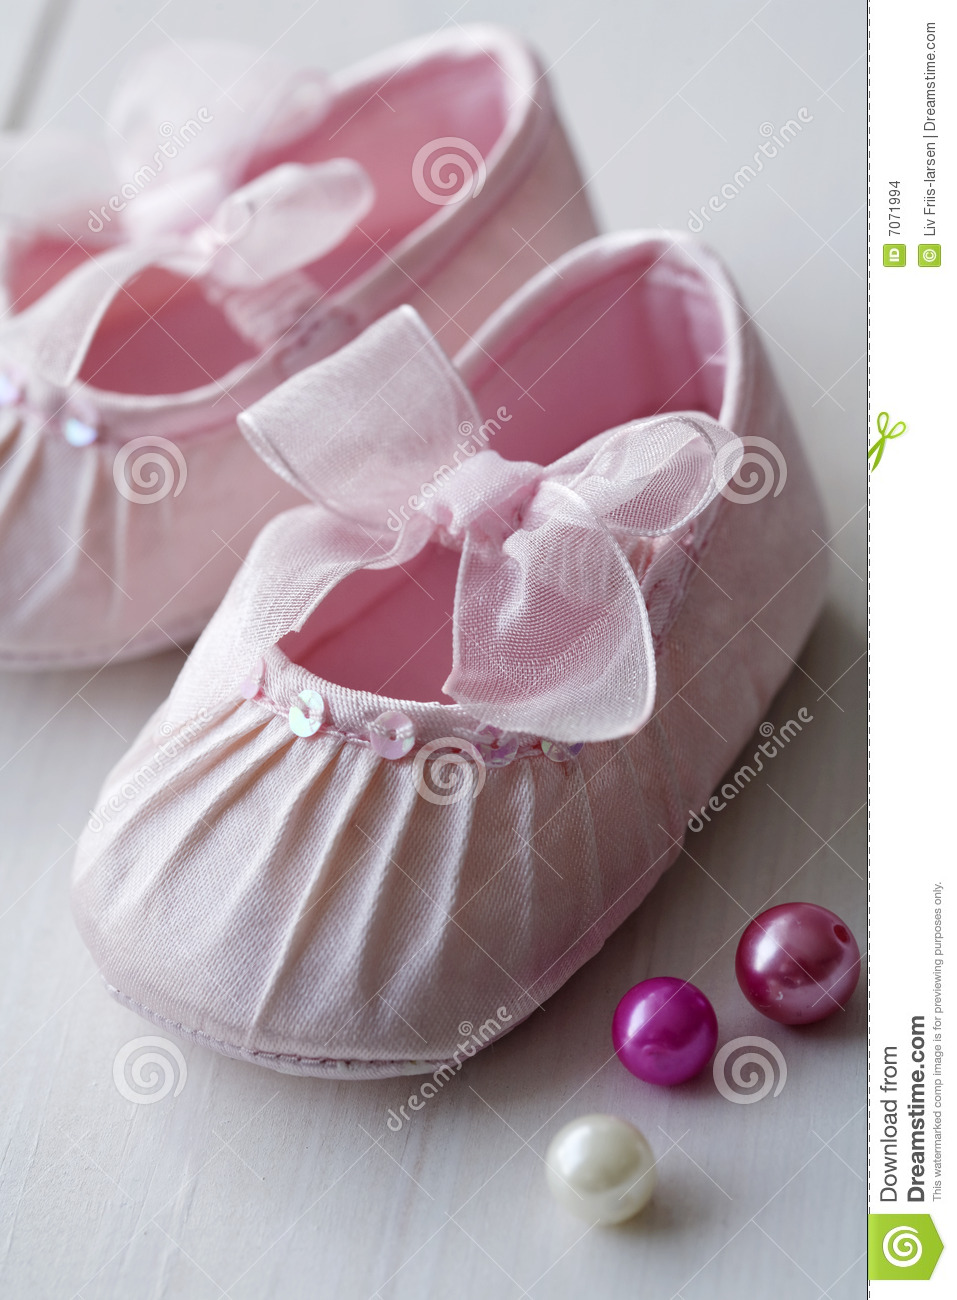 Girls Baby Shoes Stock Images - Image: 7071994